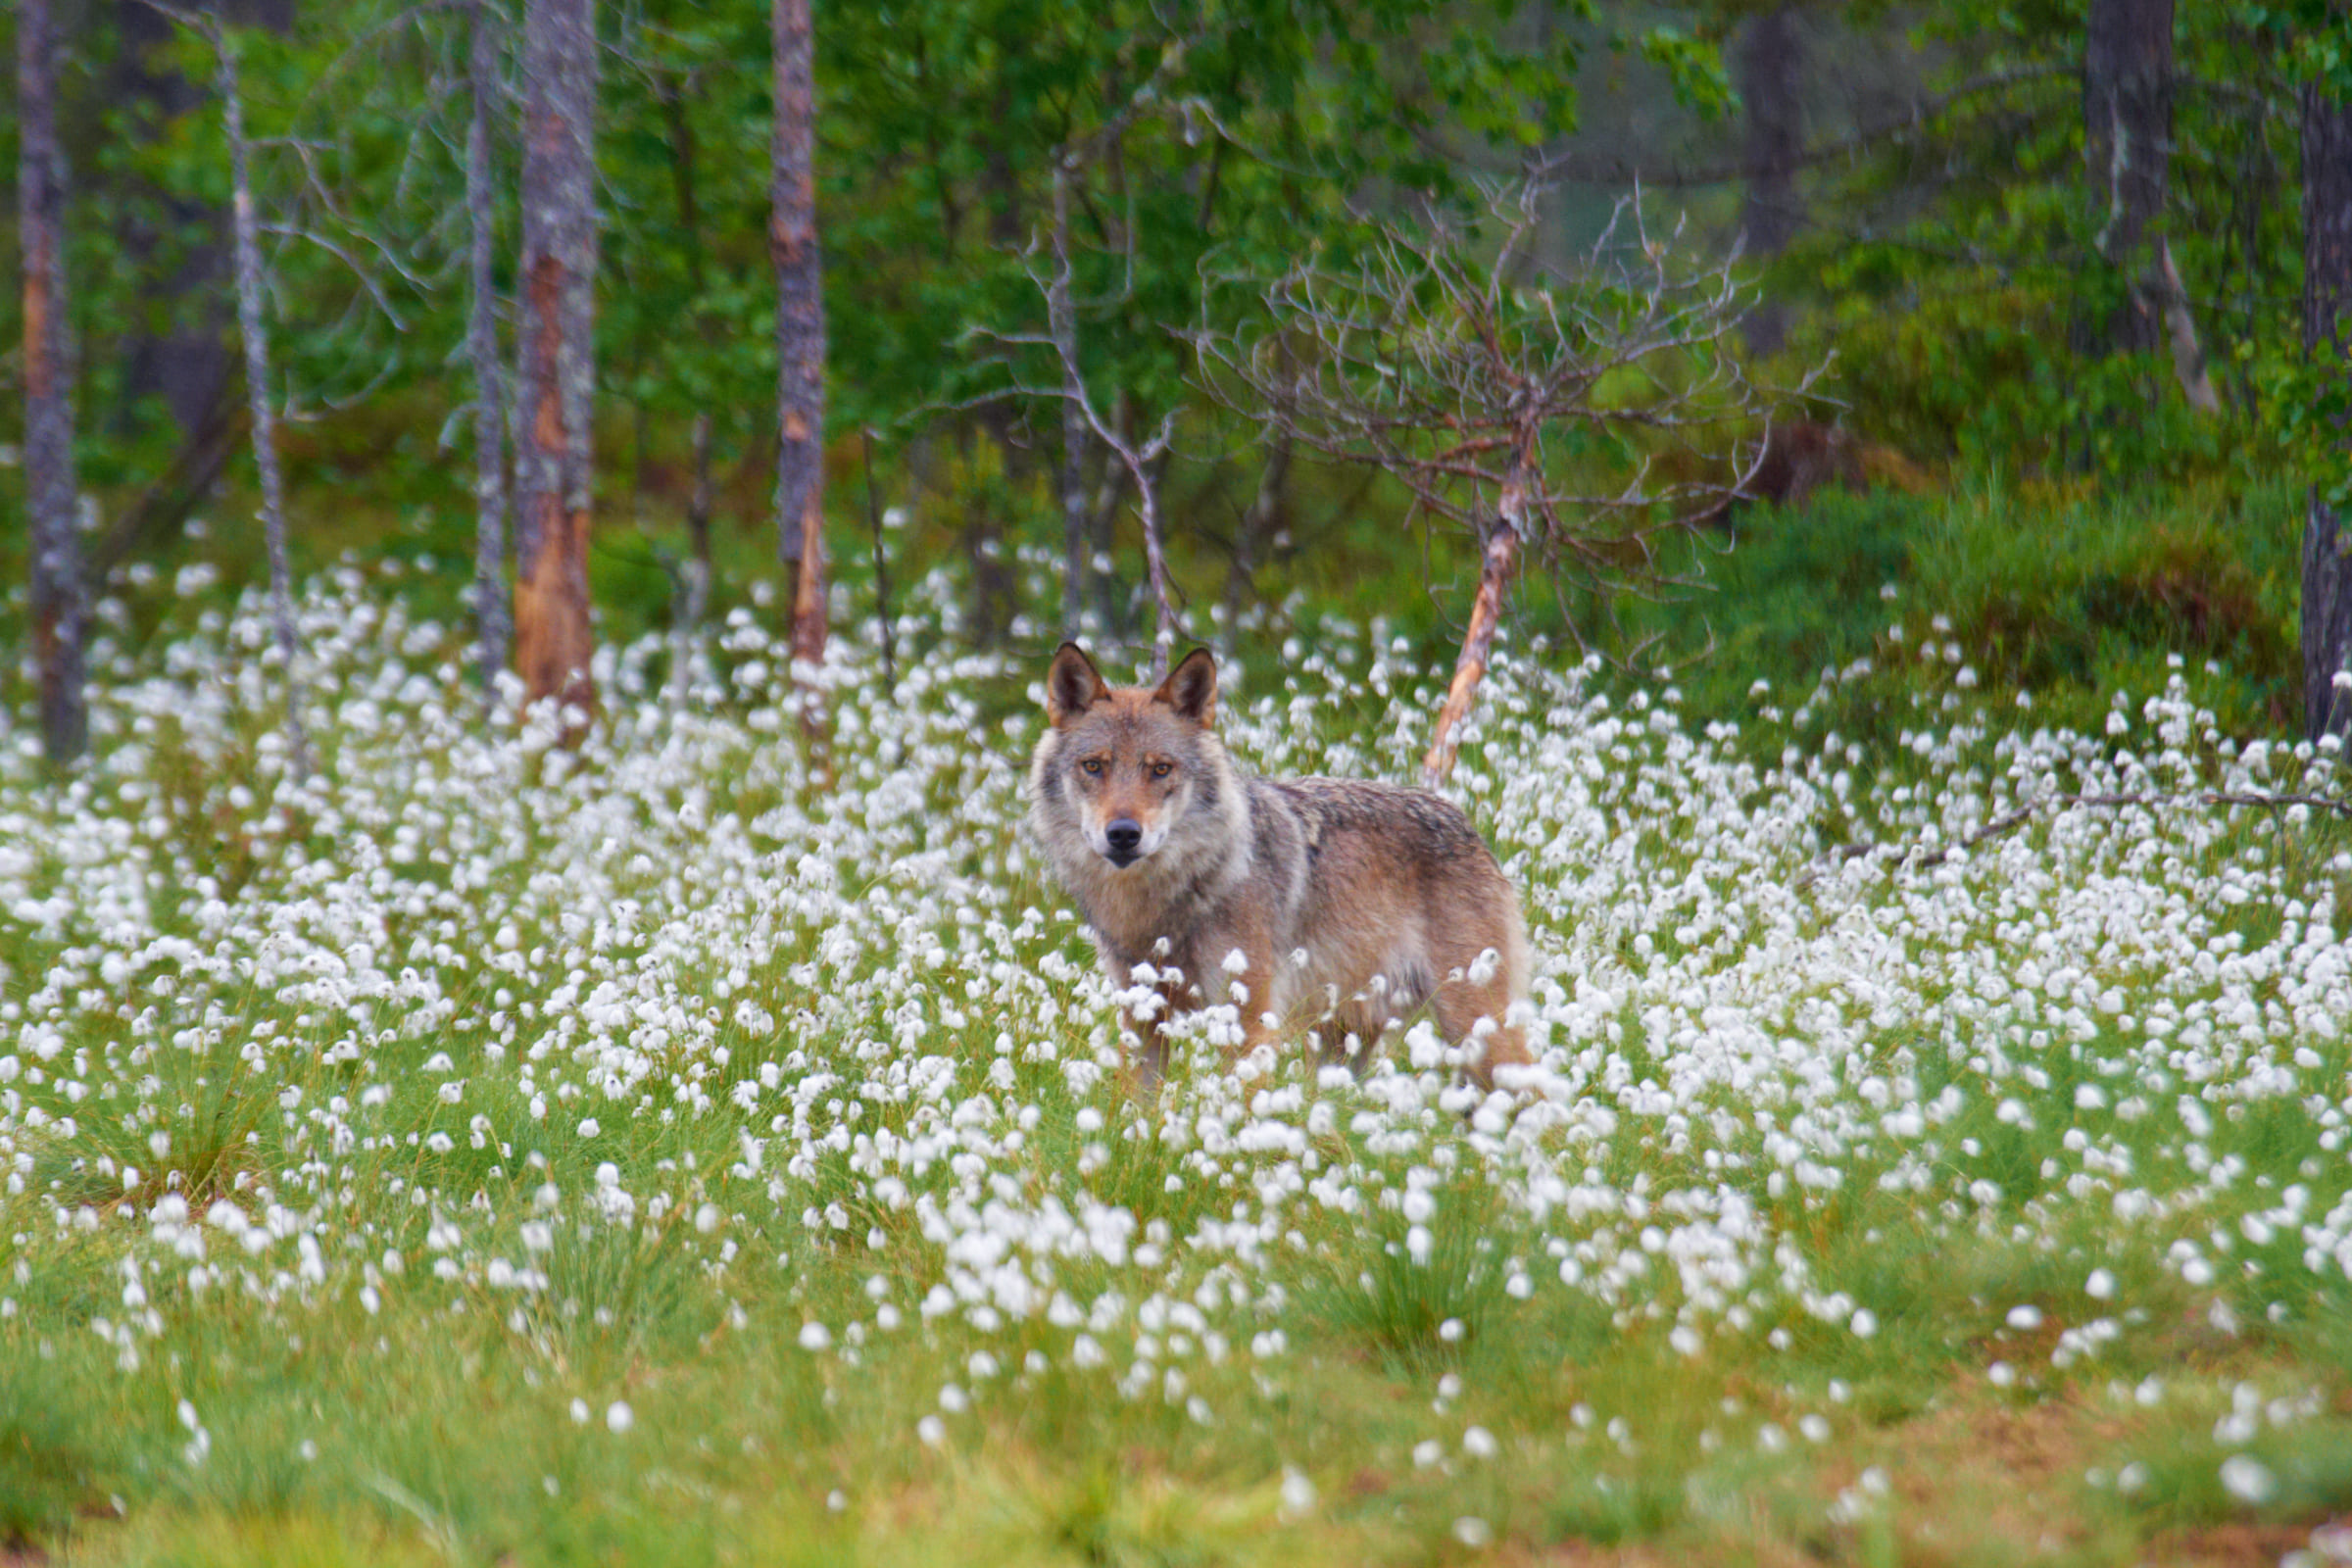 Wolf in Blumenwiese